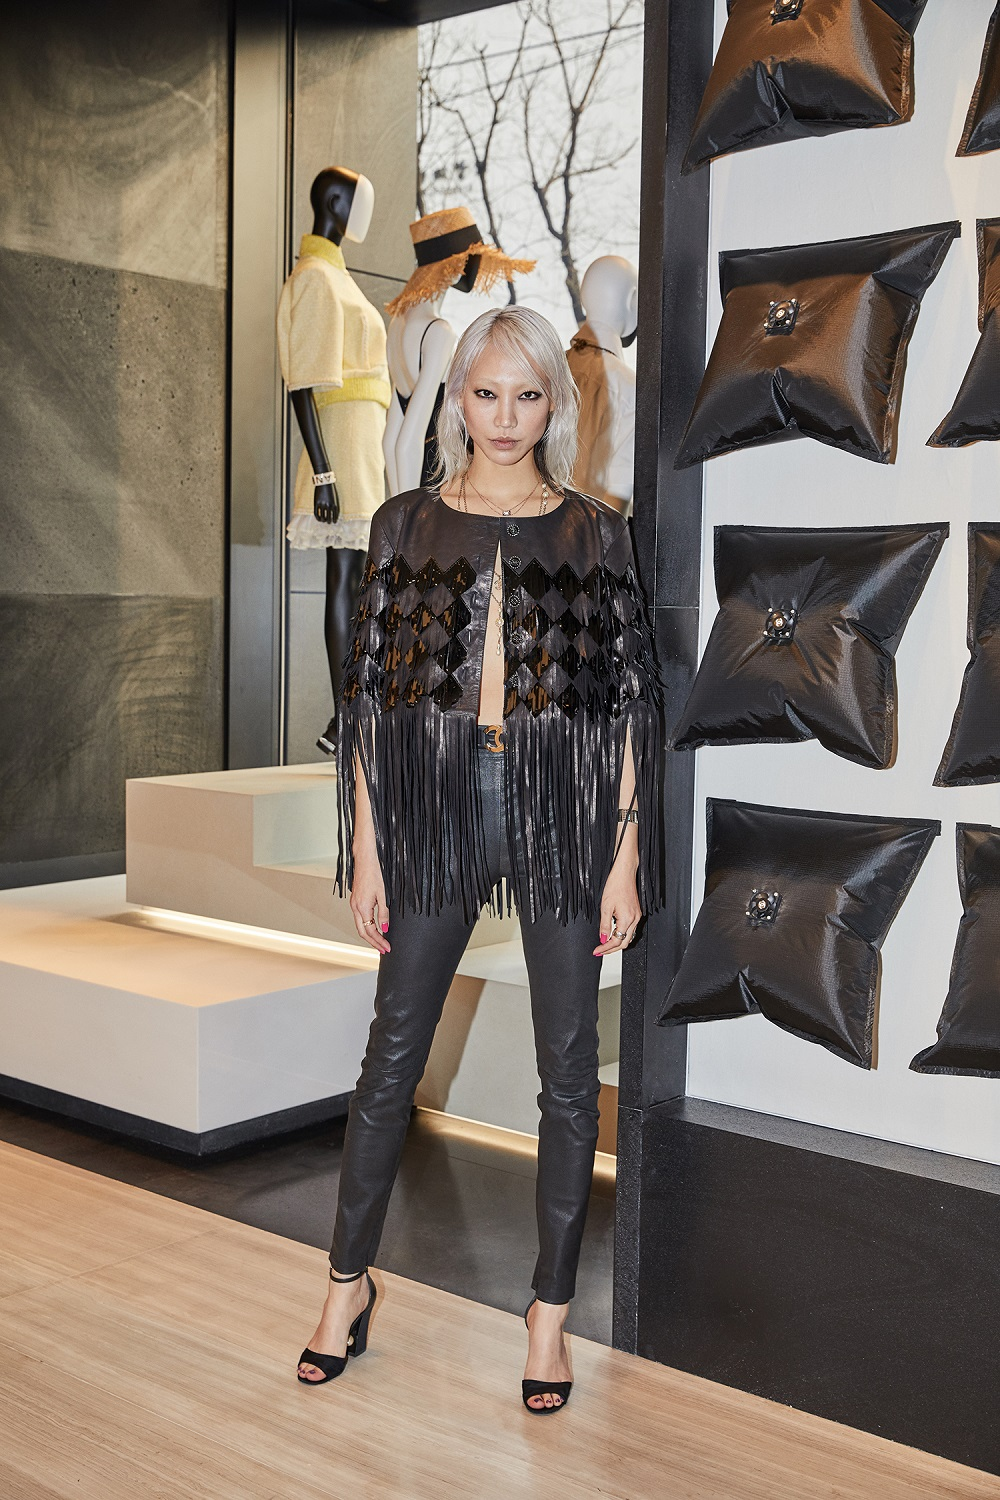 Soo Joo Park wore a black leather jacket (look 66 from the Spring-Summer 2019 Ready-to-Wear collection), with black leather pants and CHANEL shoes.